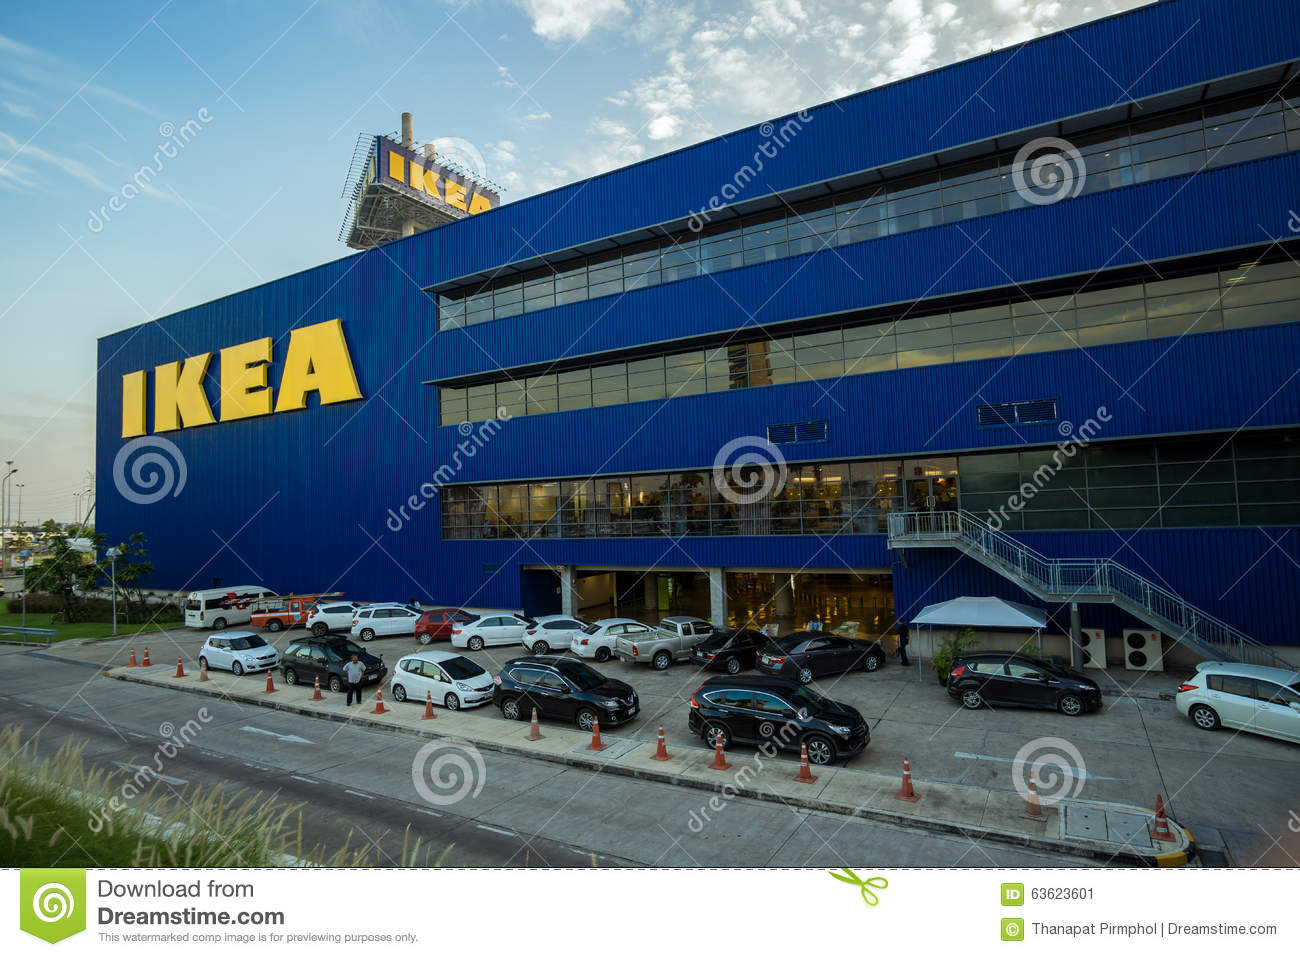 Bangkok, Thailand - 28 November 2015 : The Landscape of the First Ikea Store of Thailand at Mega Bangna Shopping Mall